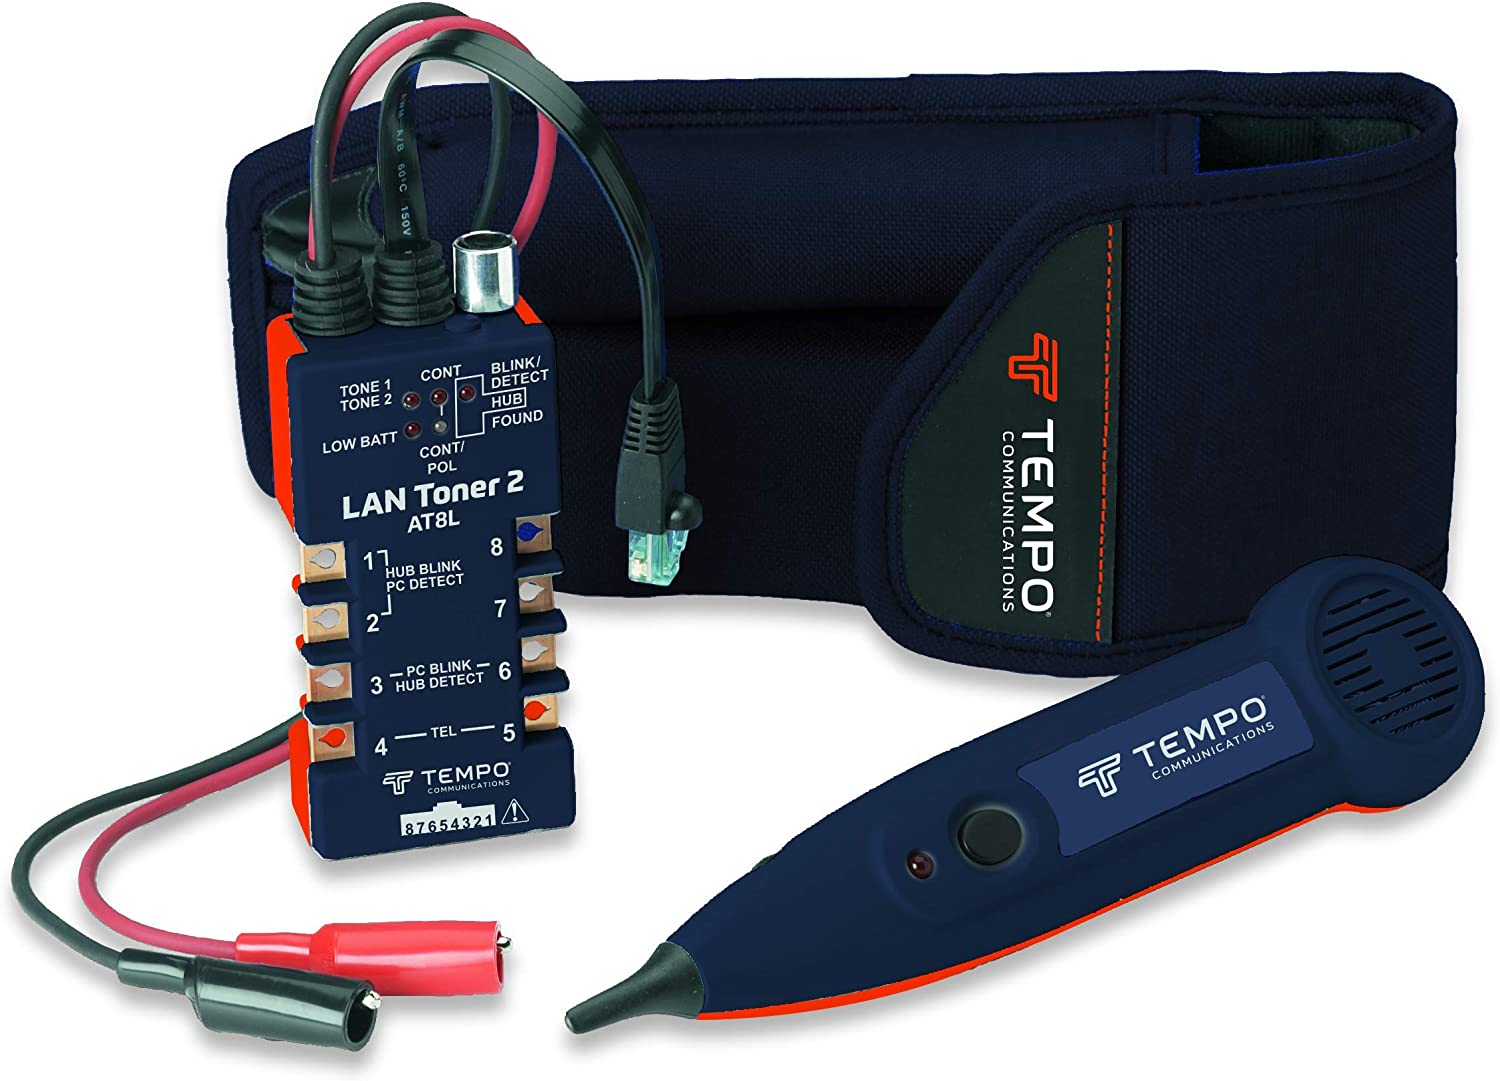 Tempo Communications AT8LK LAN Tone Generator and Probe Kit – Trace Wires and Test Local Area Network Cabling (Latest Model)